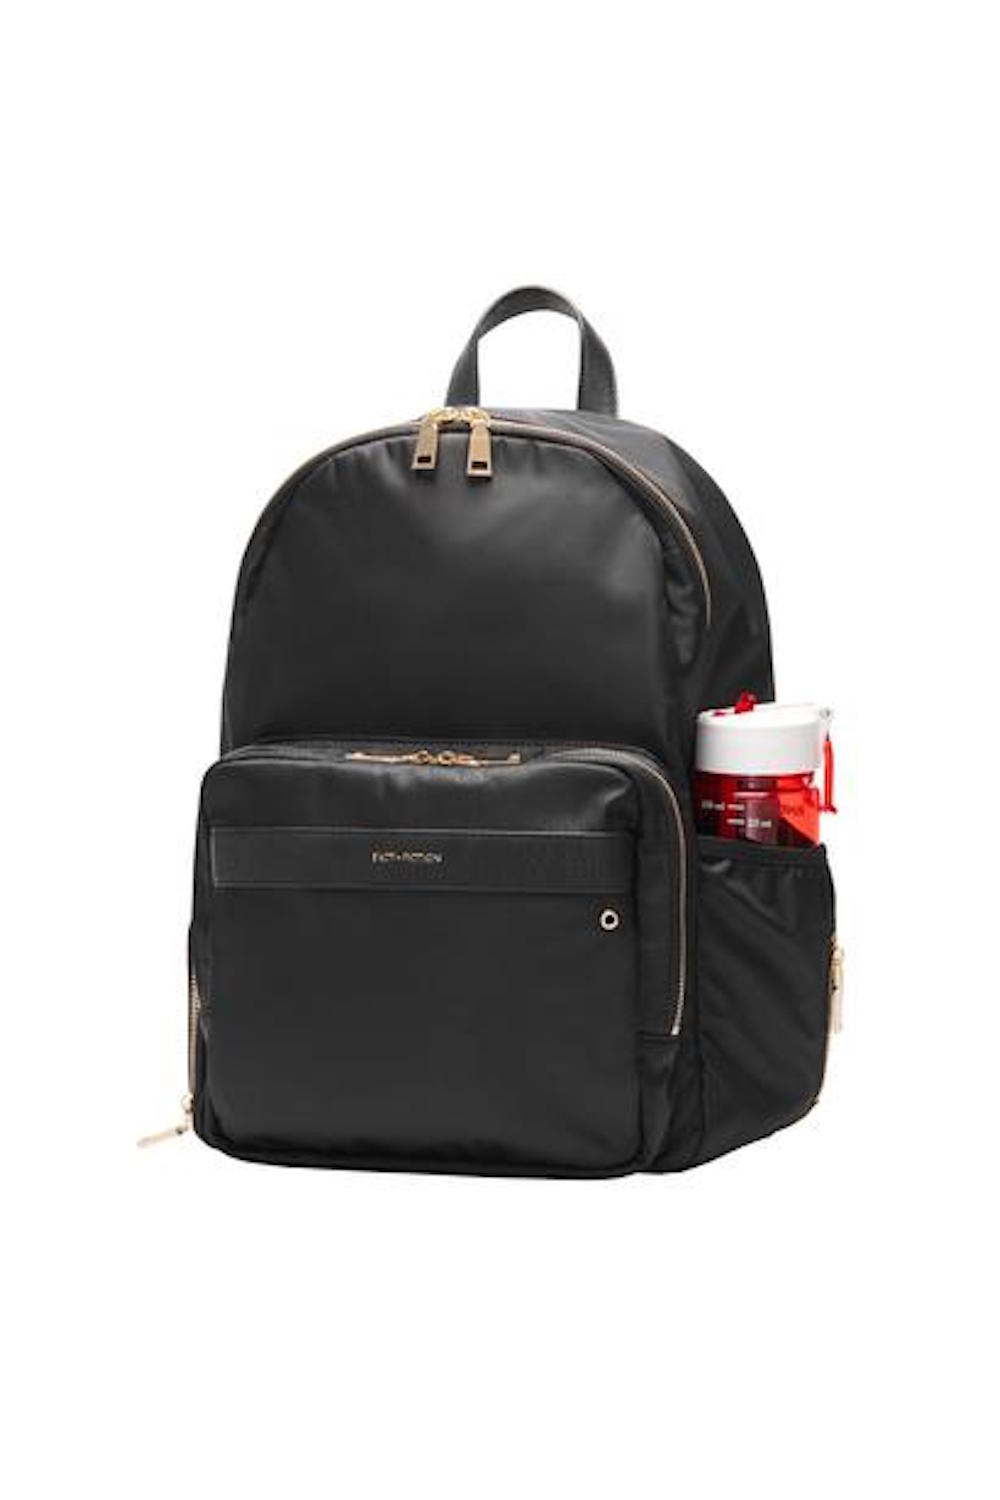 Fact + Fiction Lea Backpack £125